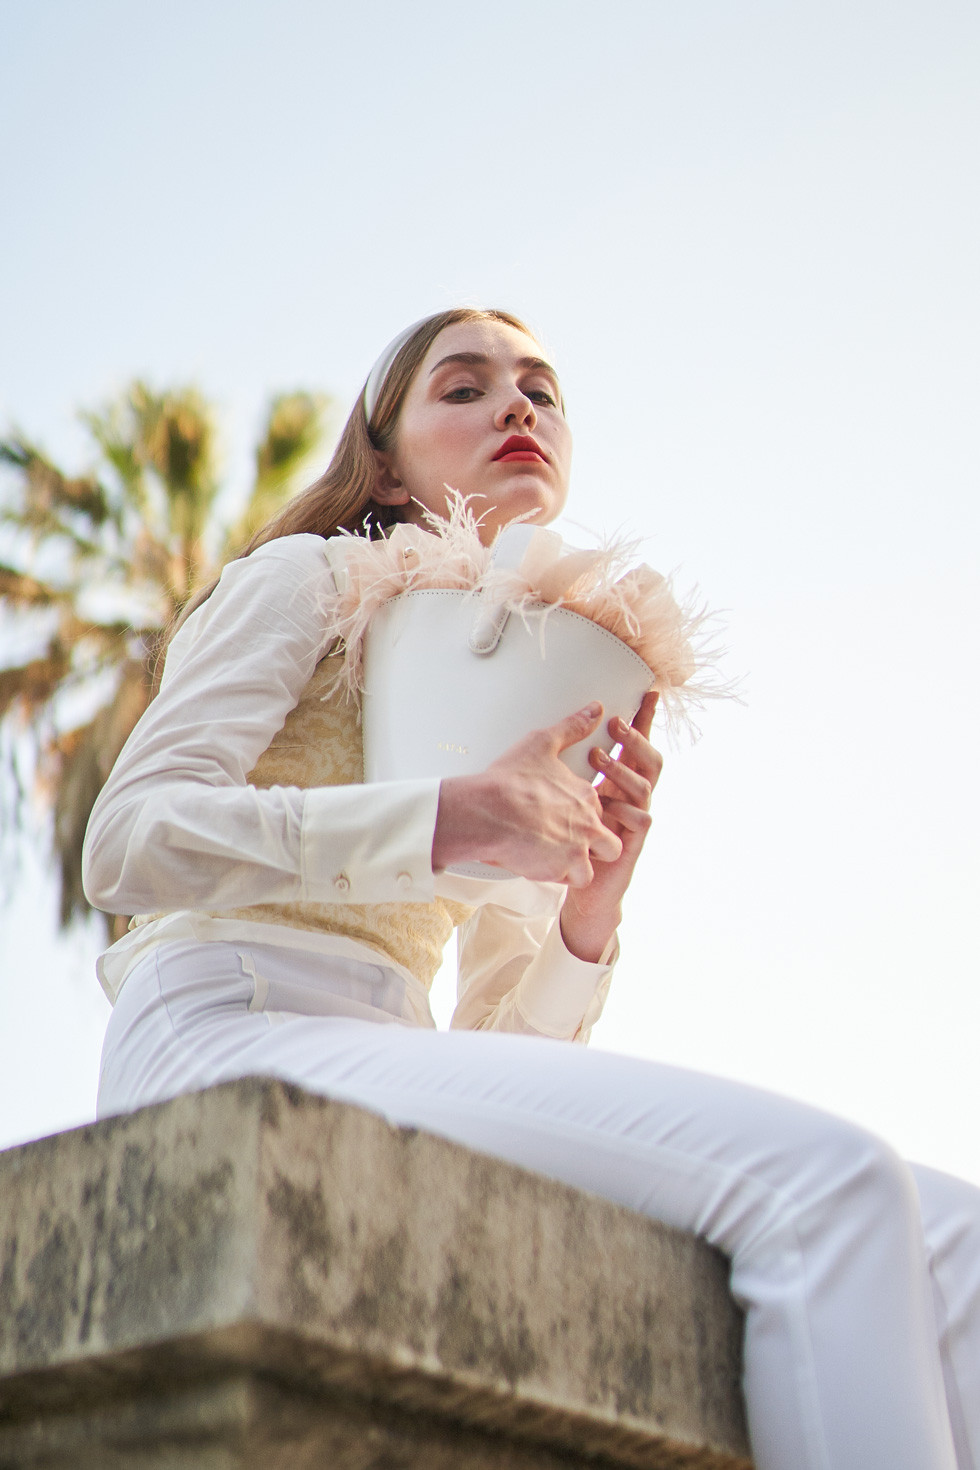 Atelier Batac is a high quality and hand-craft bag brand from Barcelona. After a target and visual identity study, we partnered them with Studio Fantastique, a clothing brand, for it's Brides Collection.